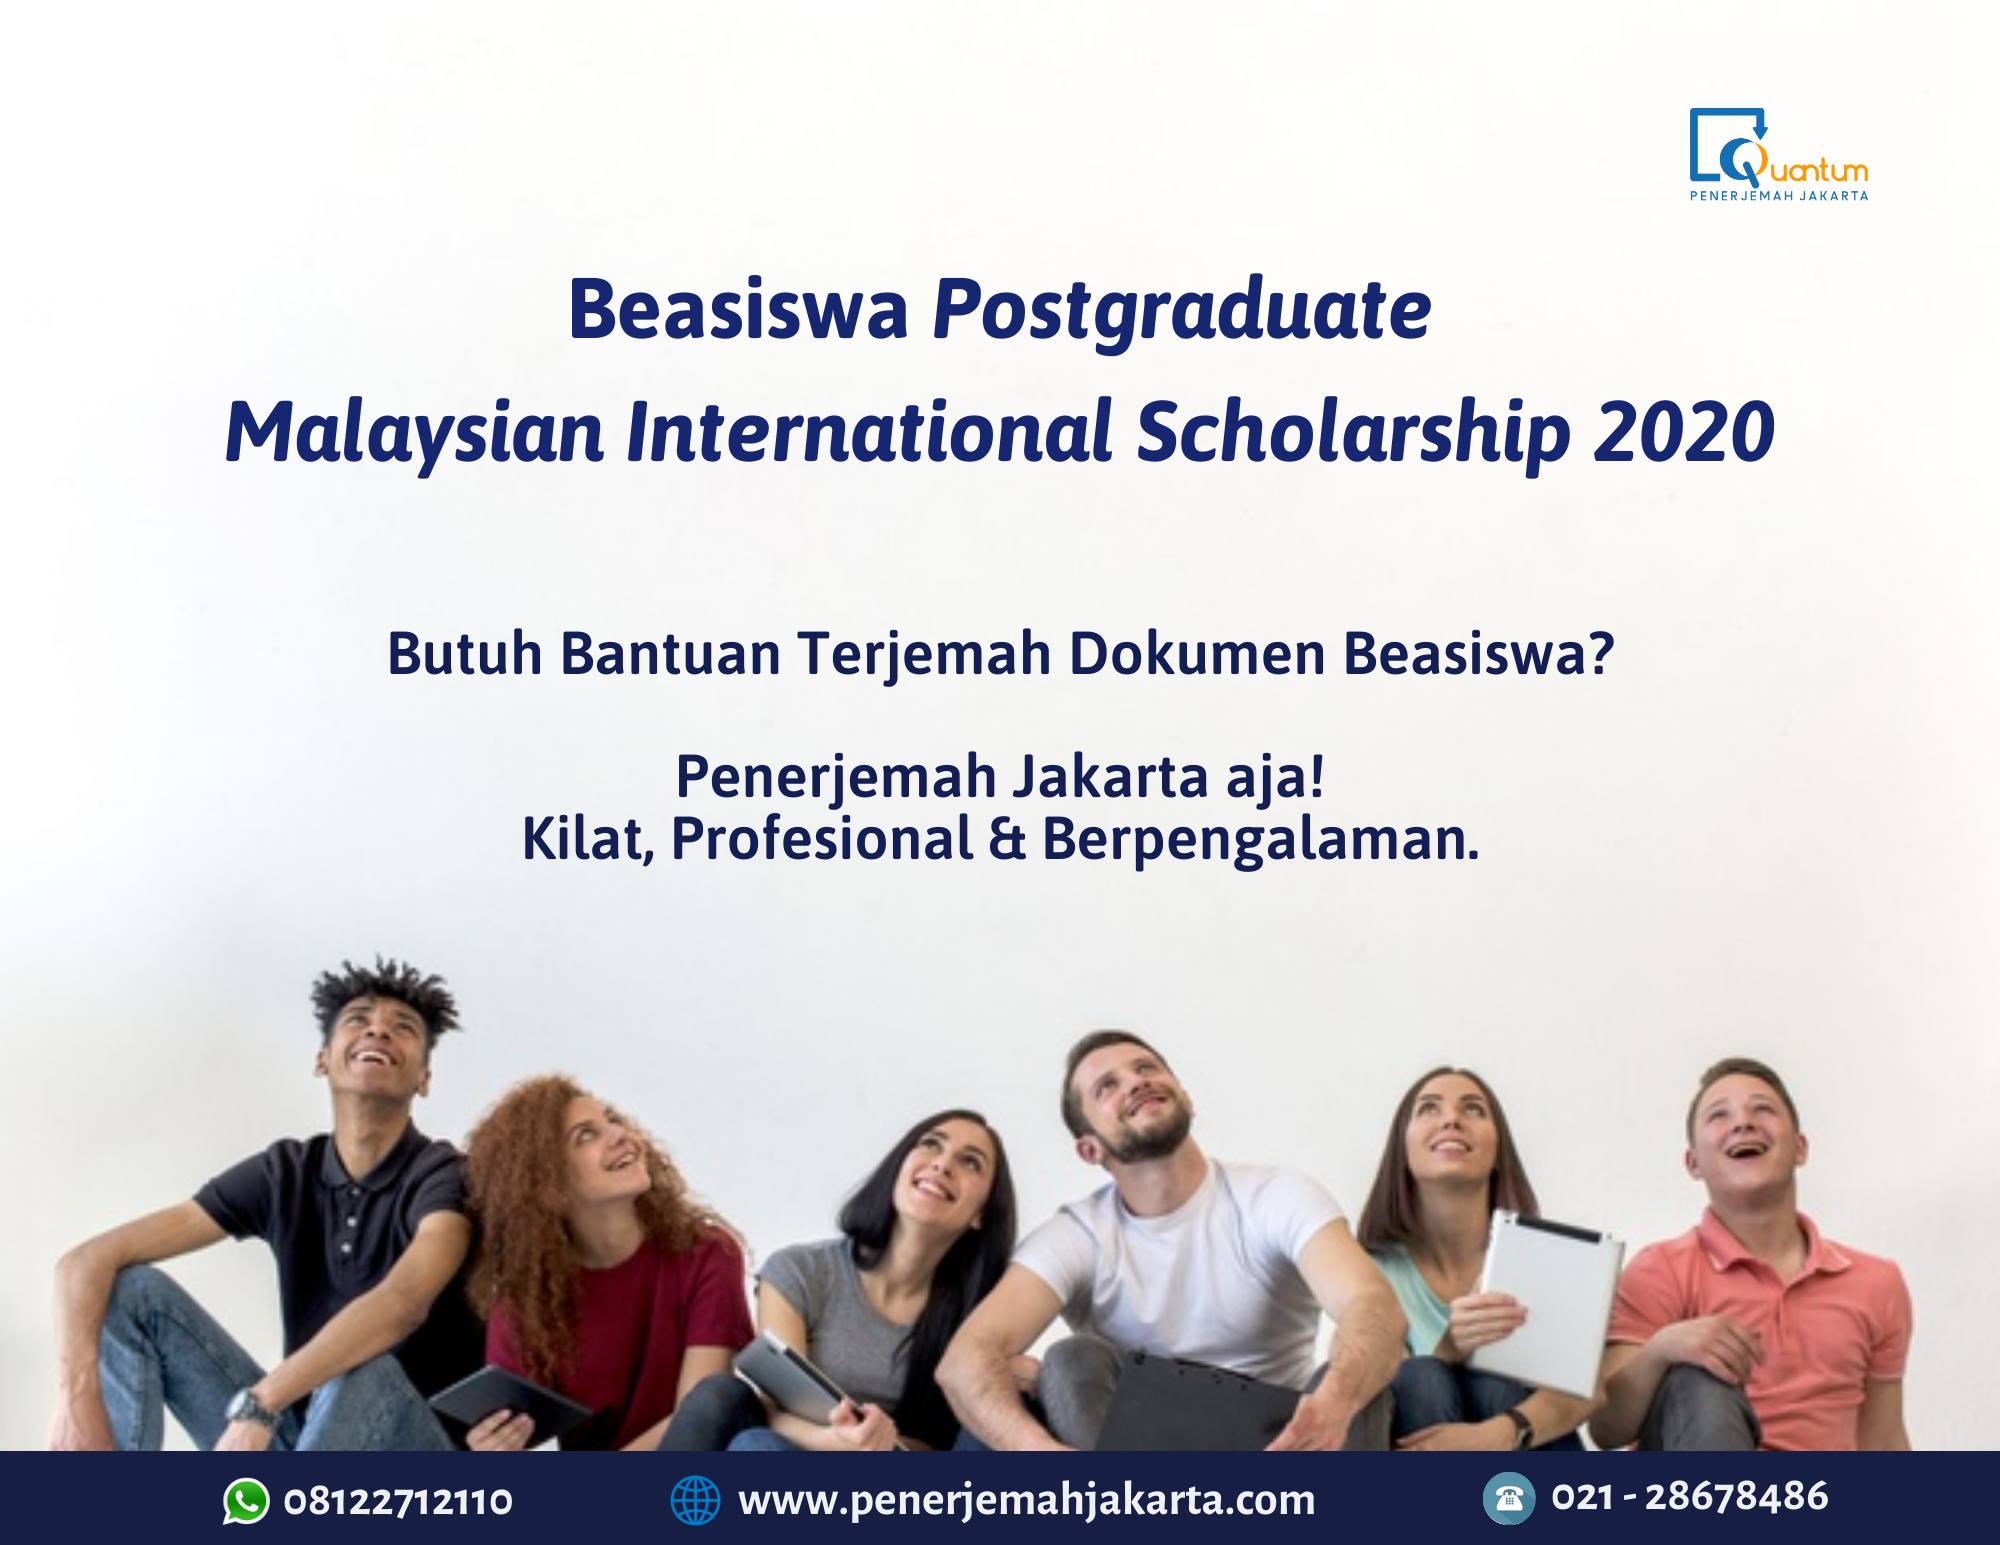 Beasiswa Postgraduate Malaysian International Scholarship 2020